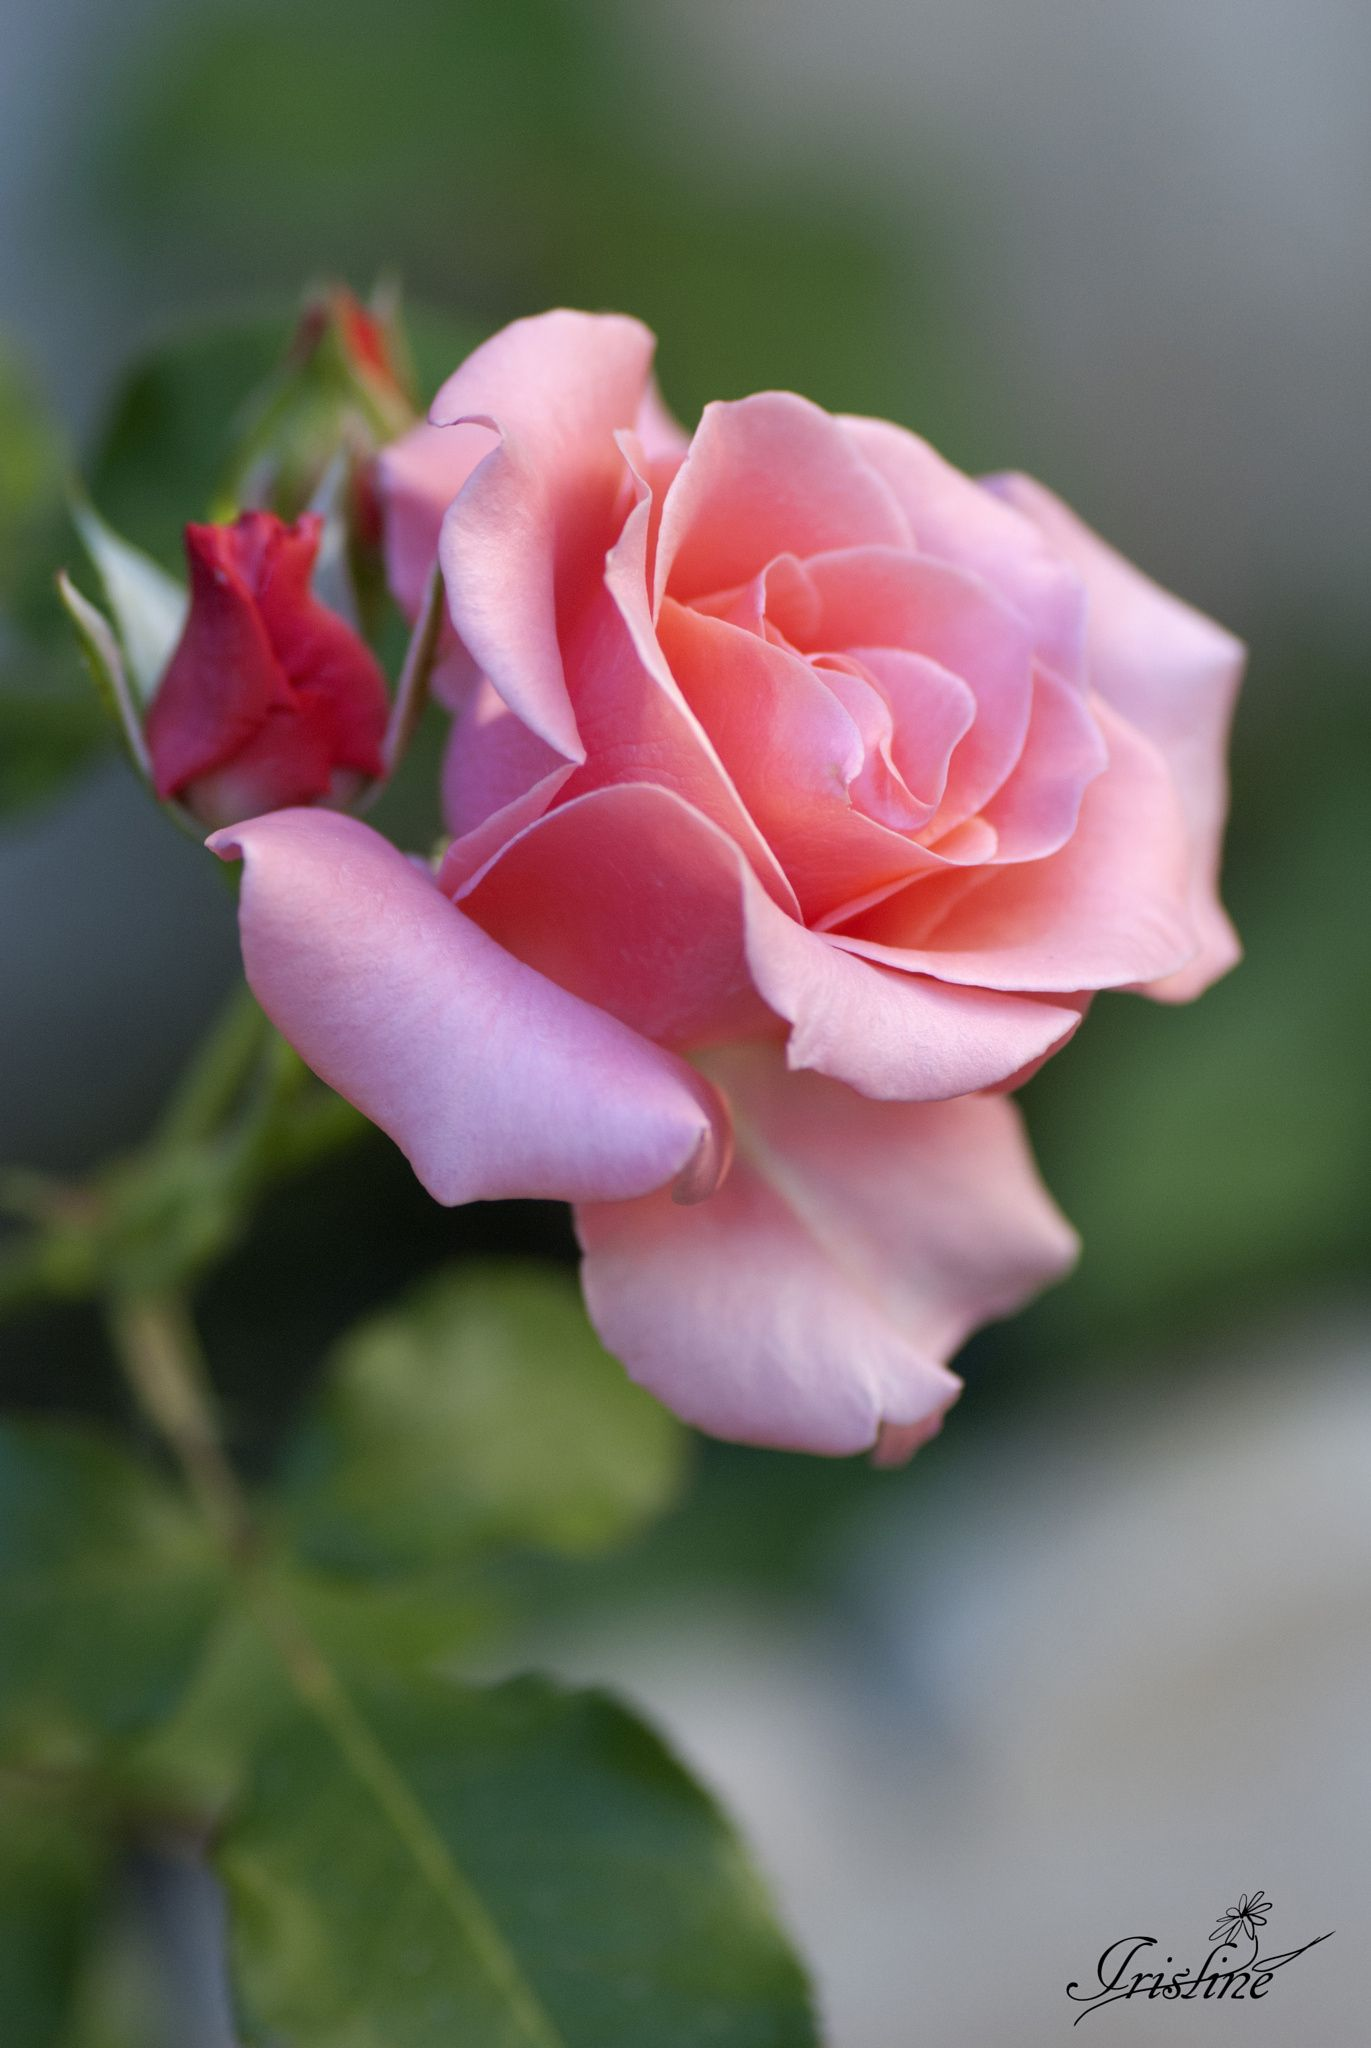 Rosa rosa by sara torcal on 500px beautiful flowers pinterest pretty flowers izmirmasajfo Images